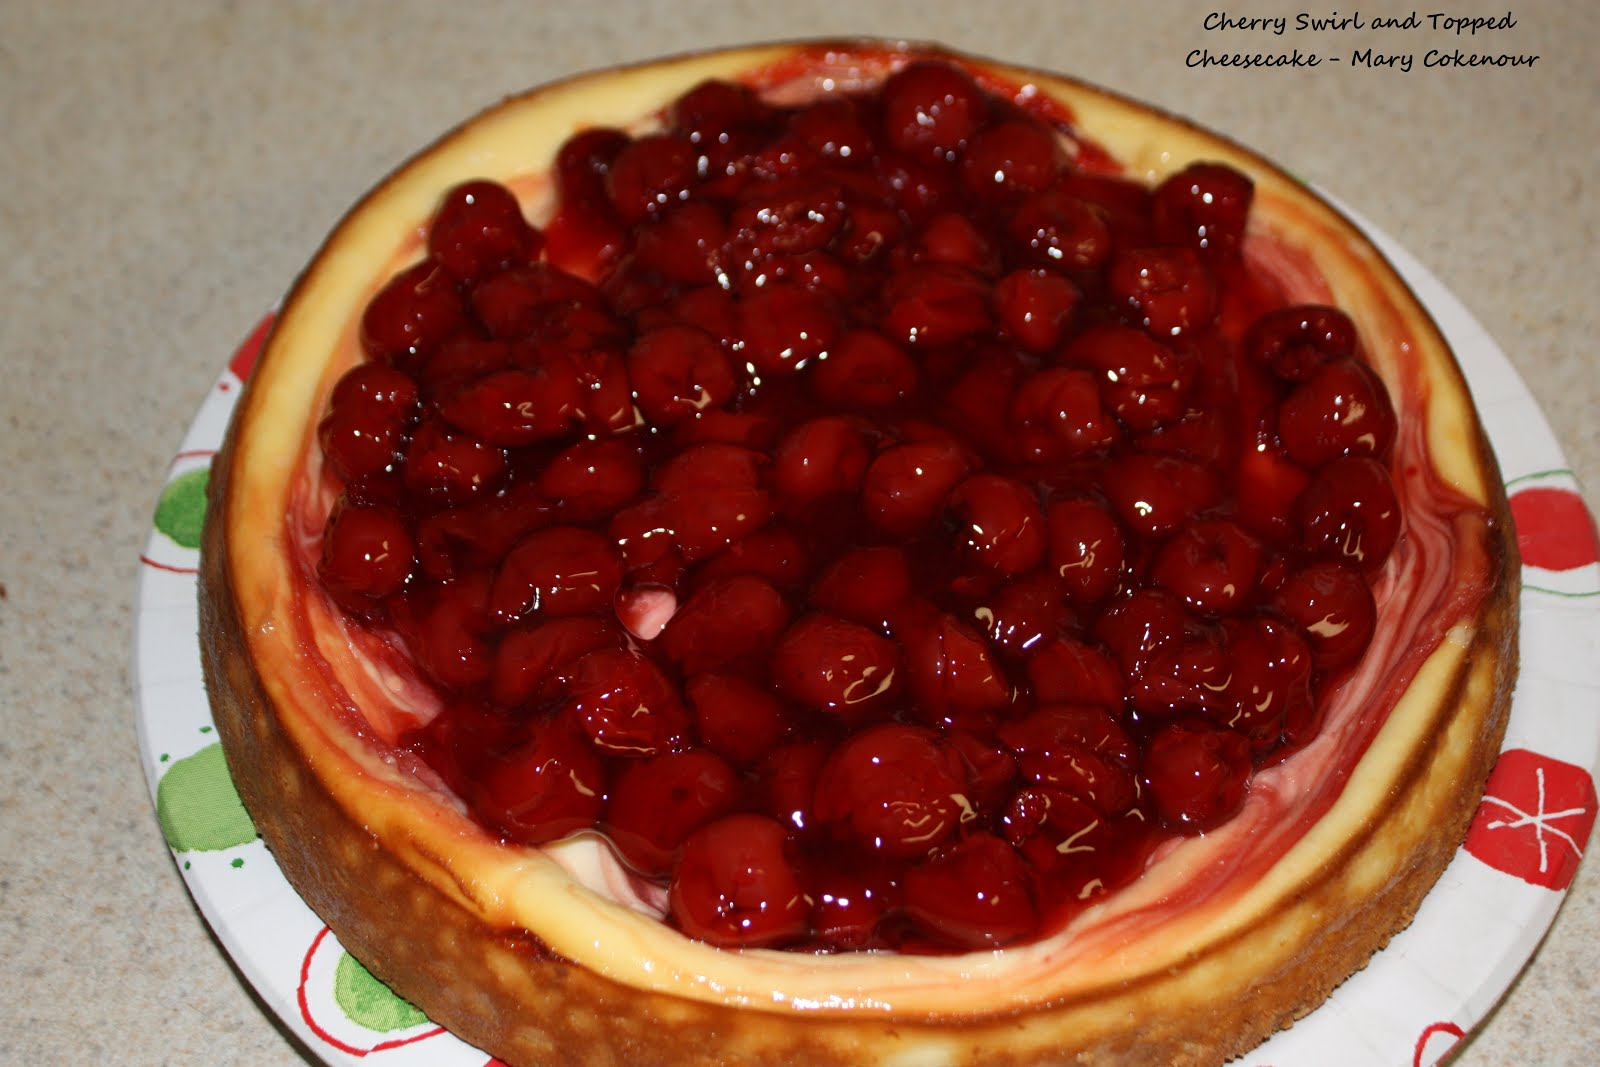 Food Adventures of a Comfort Cook: Fruity Adventure into Cheesecake.